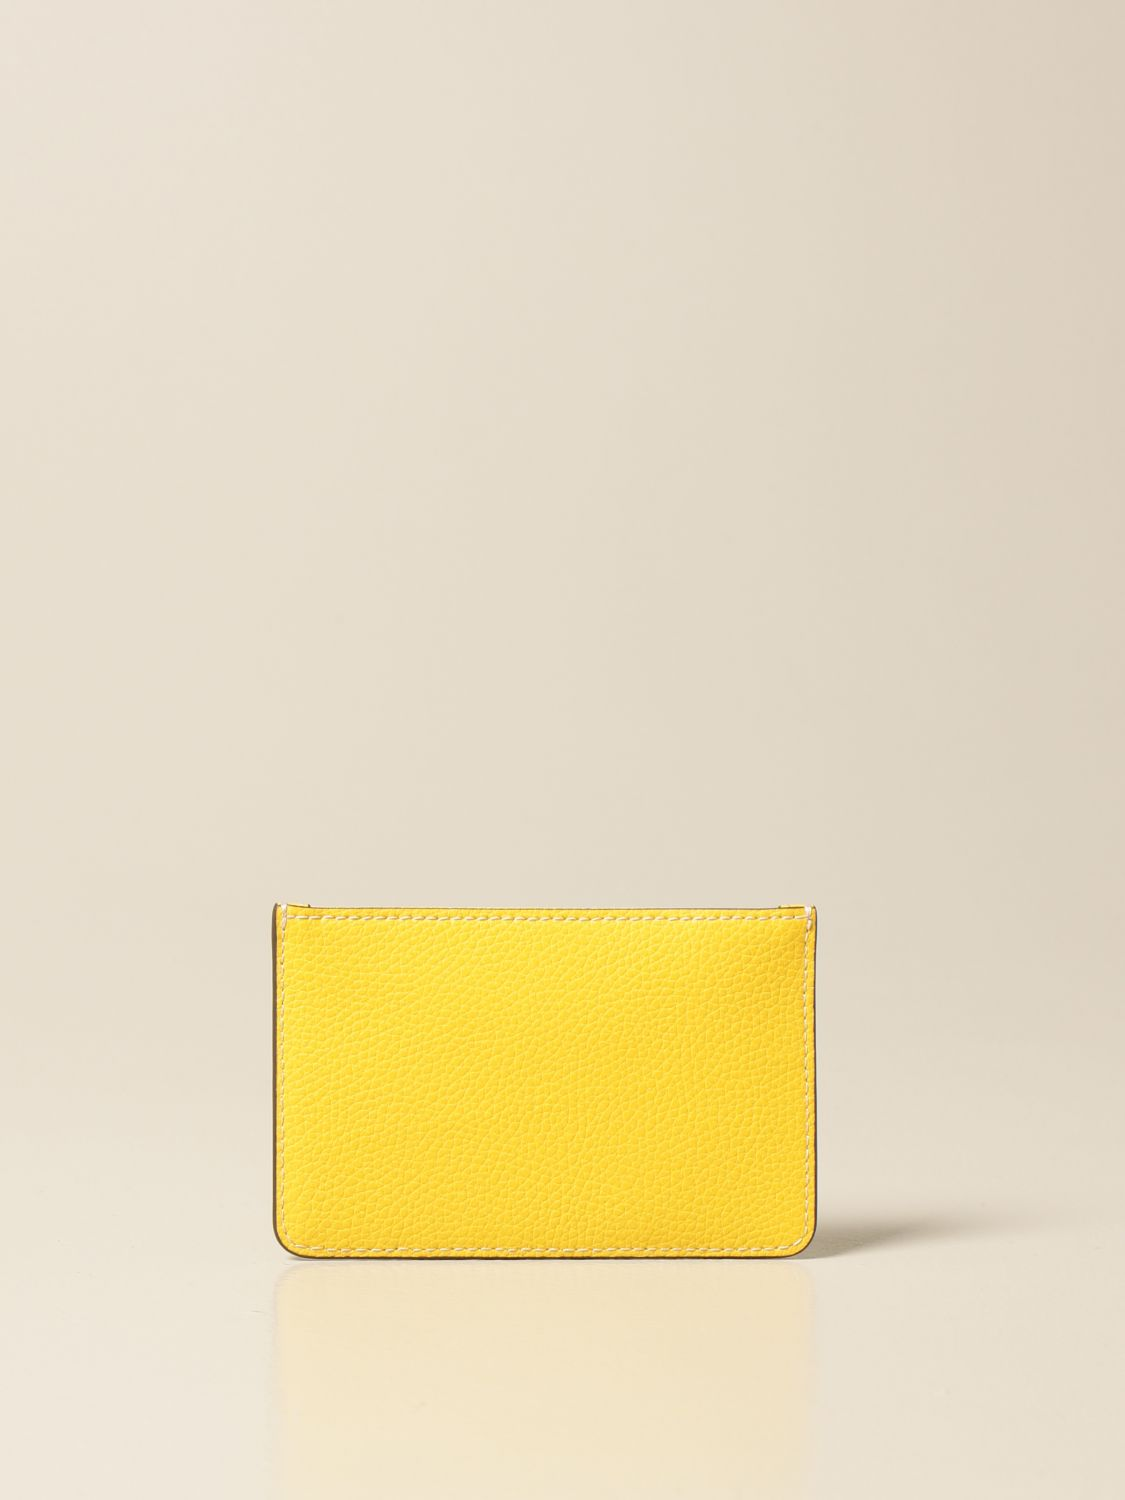 Wallet Tory Burch: Tory Burch credit card holder in hammered leather with logo and zip yellow 2